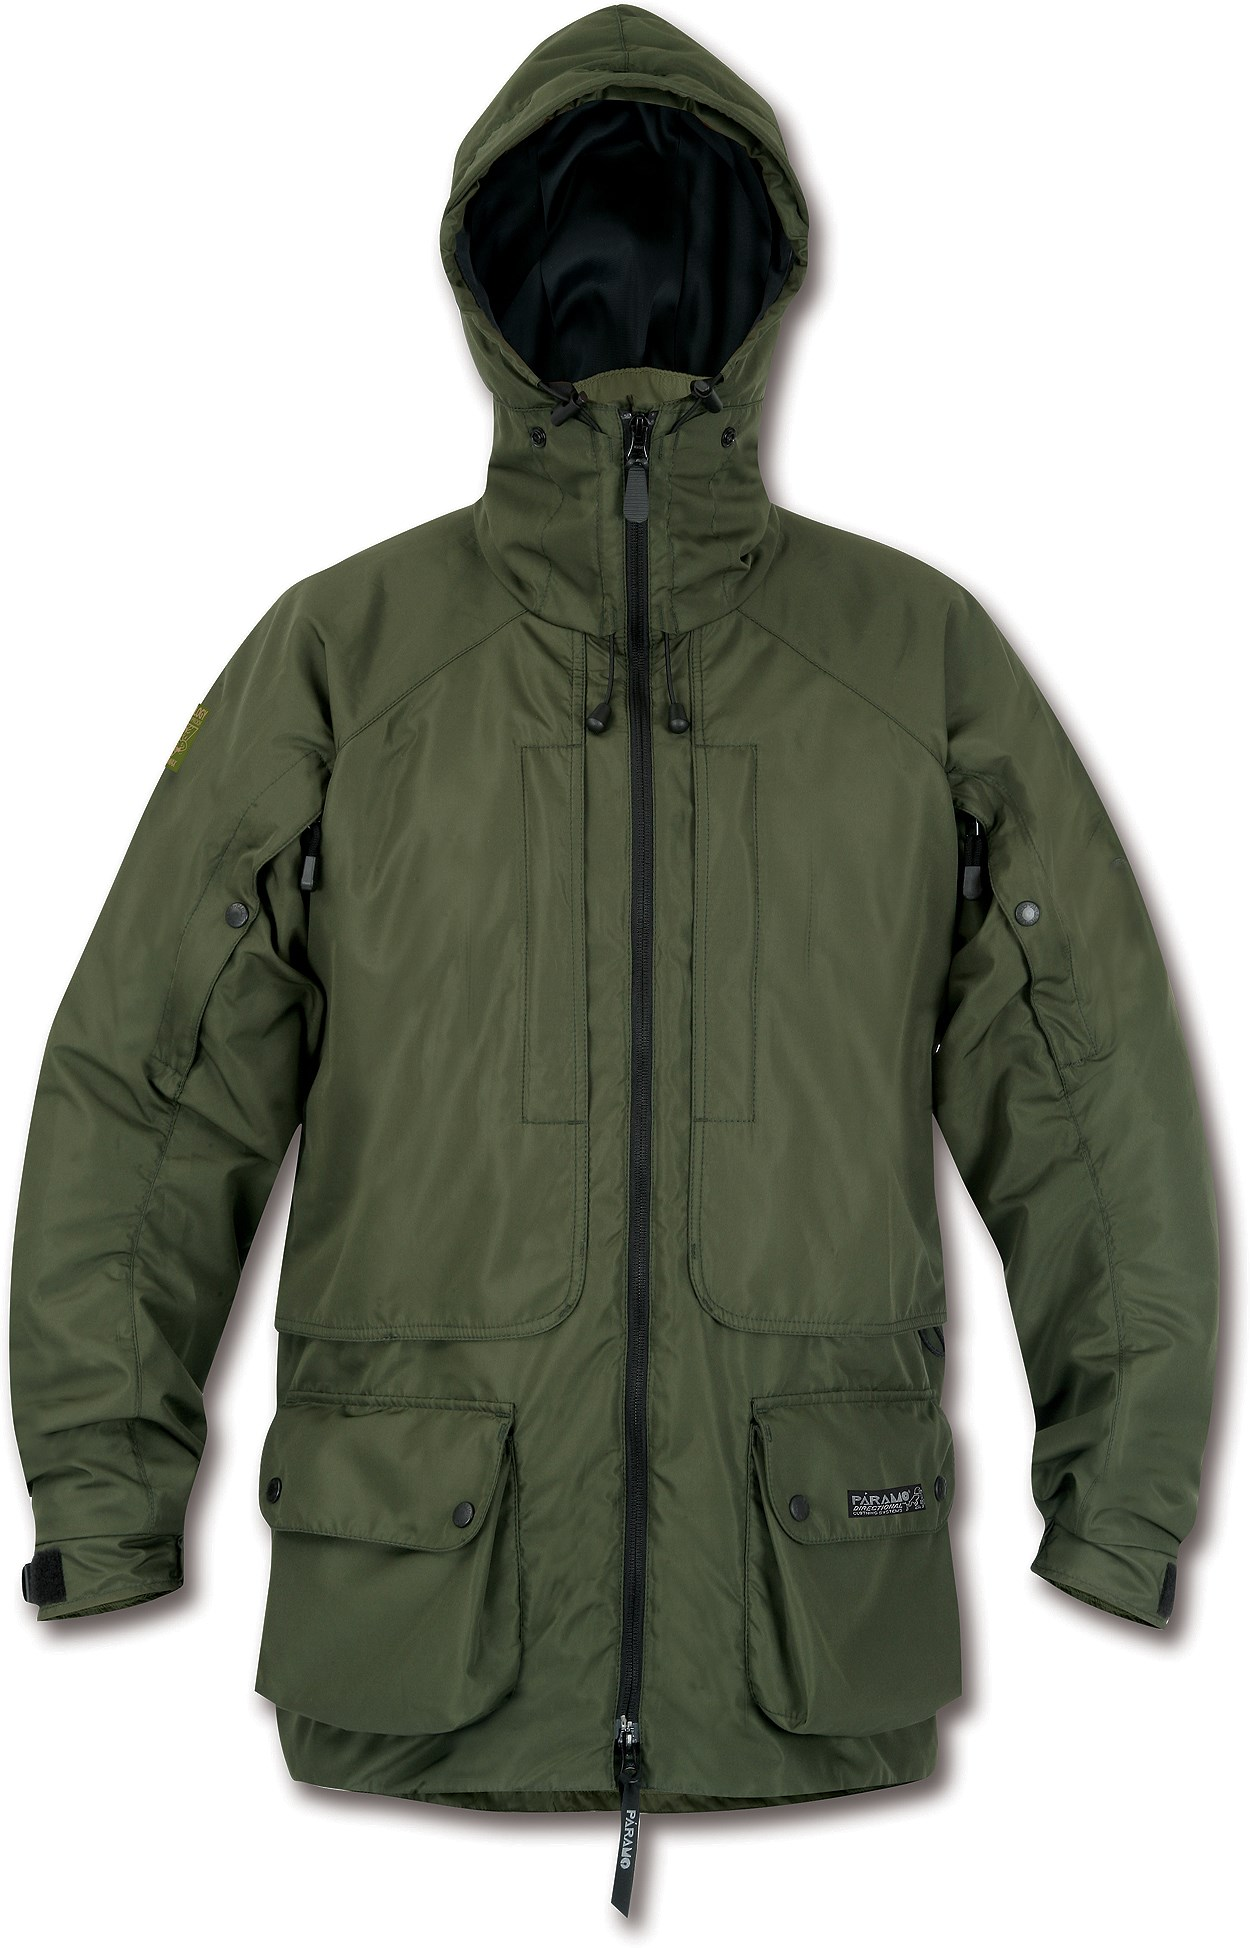 Waterproof Jacket Buying Guide | Which Waterproof Coat is right ...